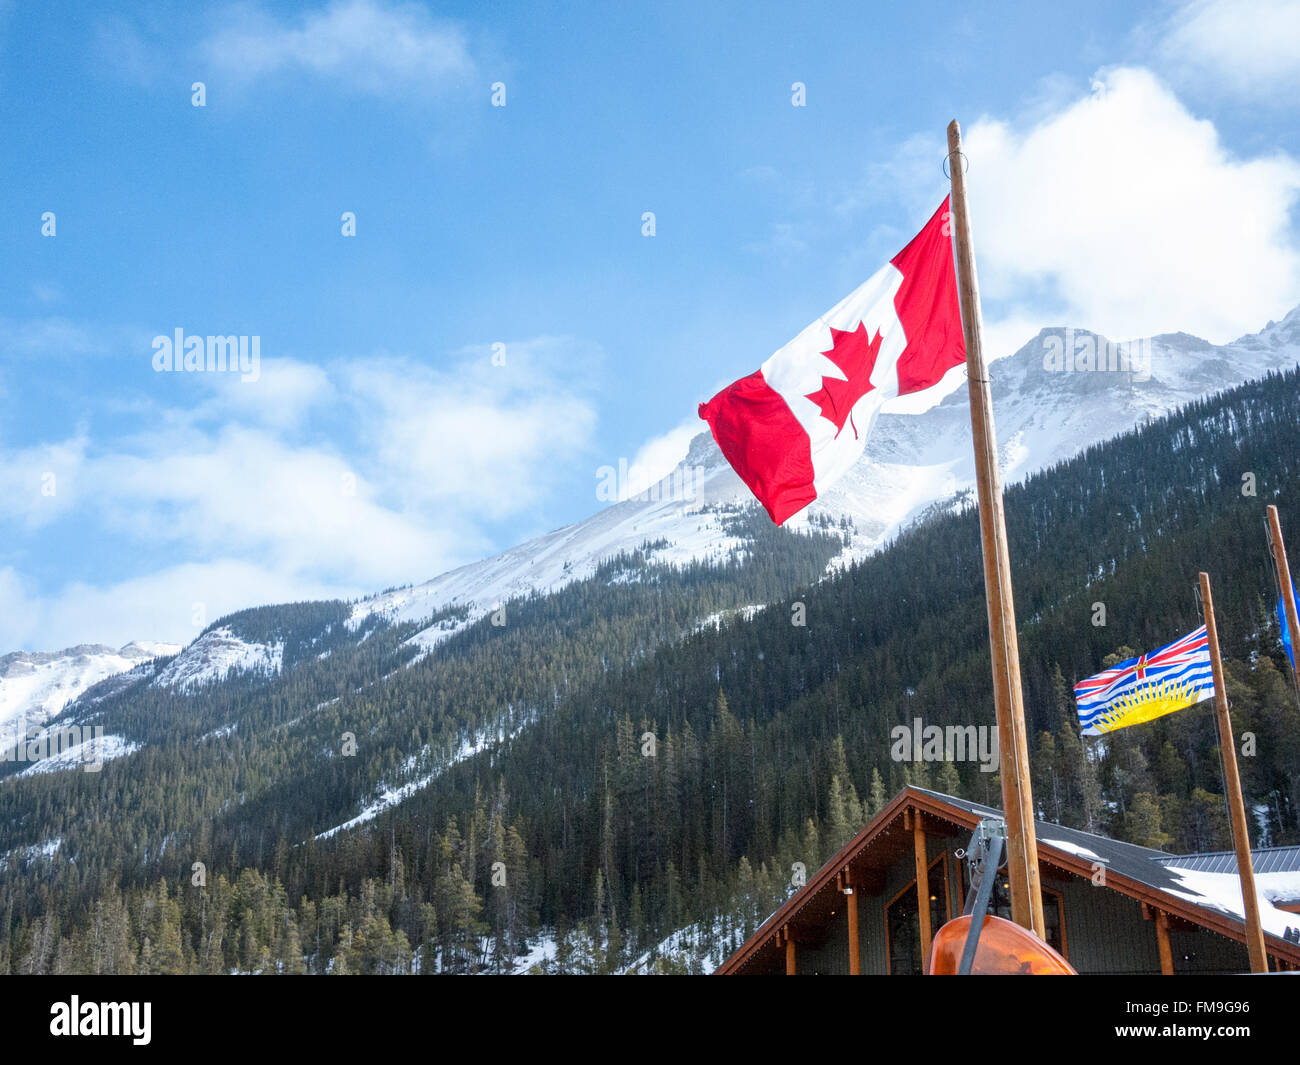 The Canadian Maple Leaf flag flying at the Sunshine Village Ski resort at Banff in the Rockies Canada - Stock Image